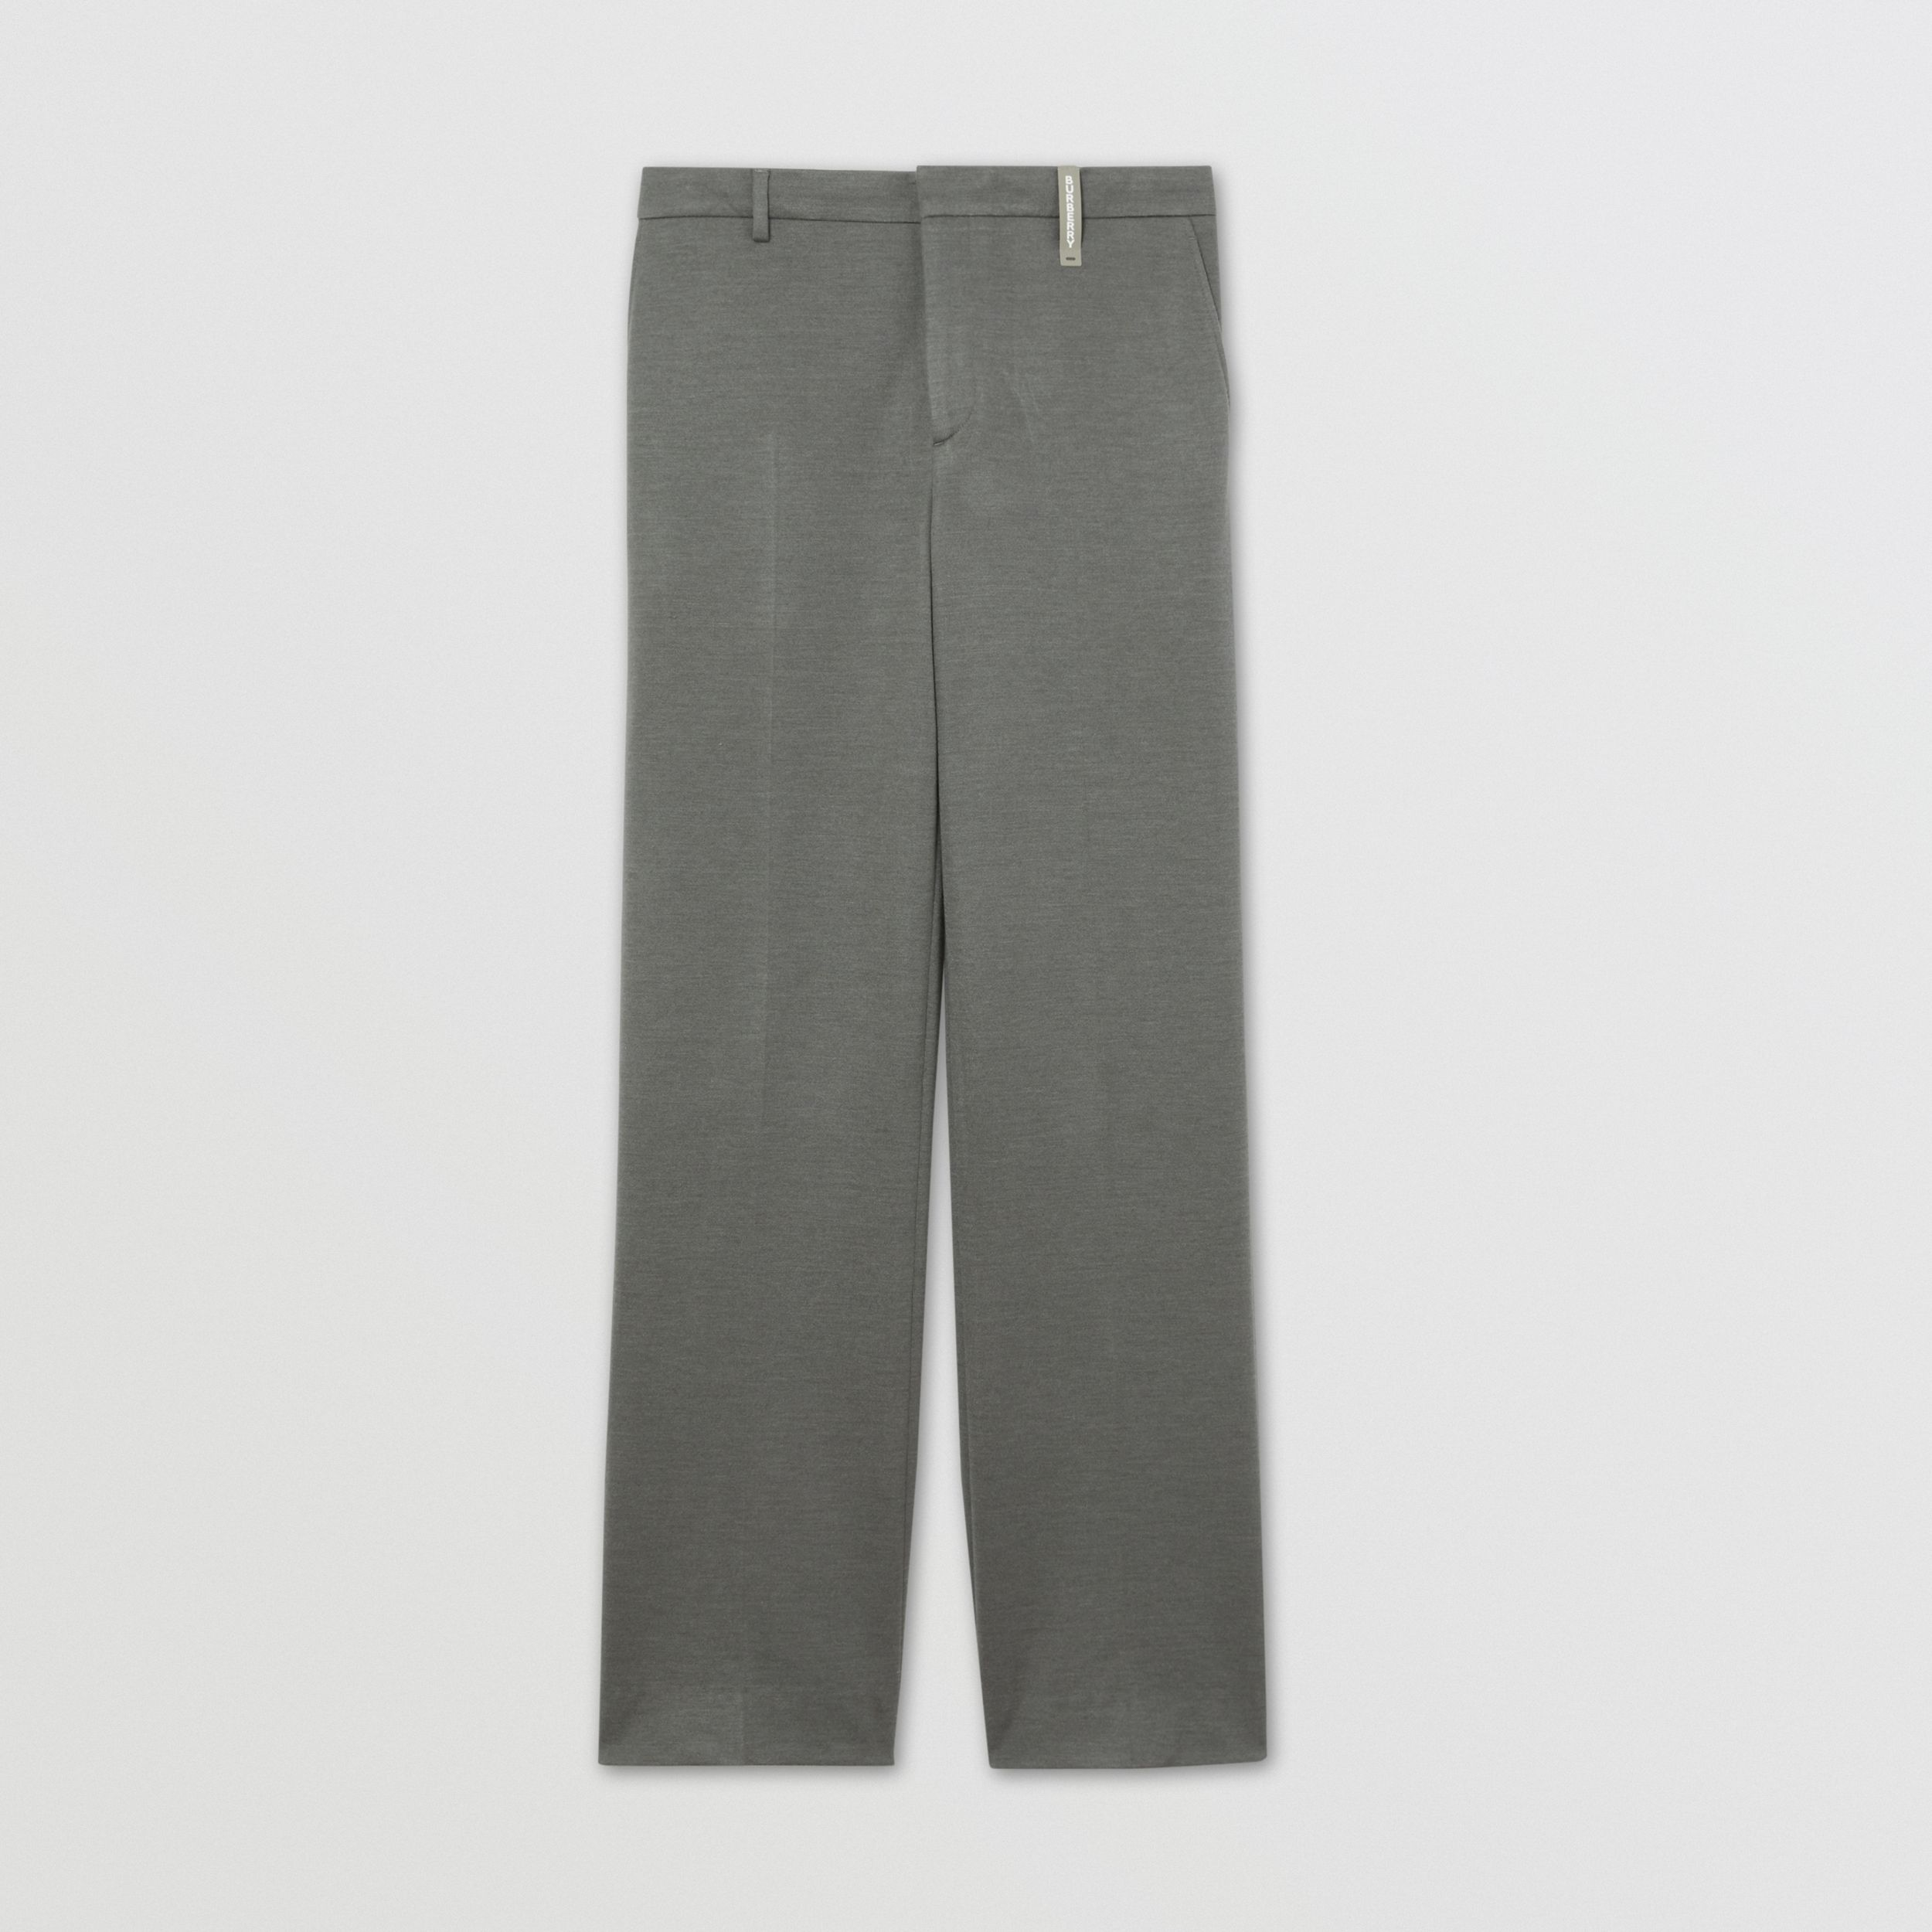 Cashmere Silk Jersey Wide-leg Trousers in Cloud Grey - Men | Burberry - 4